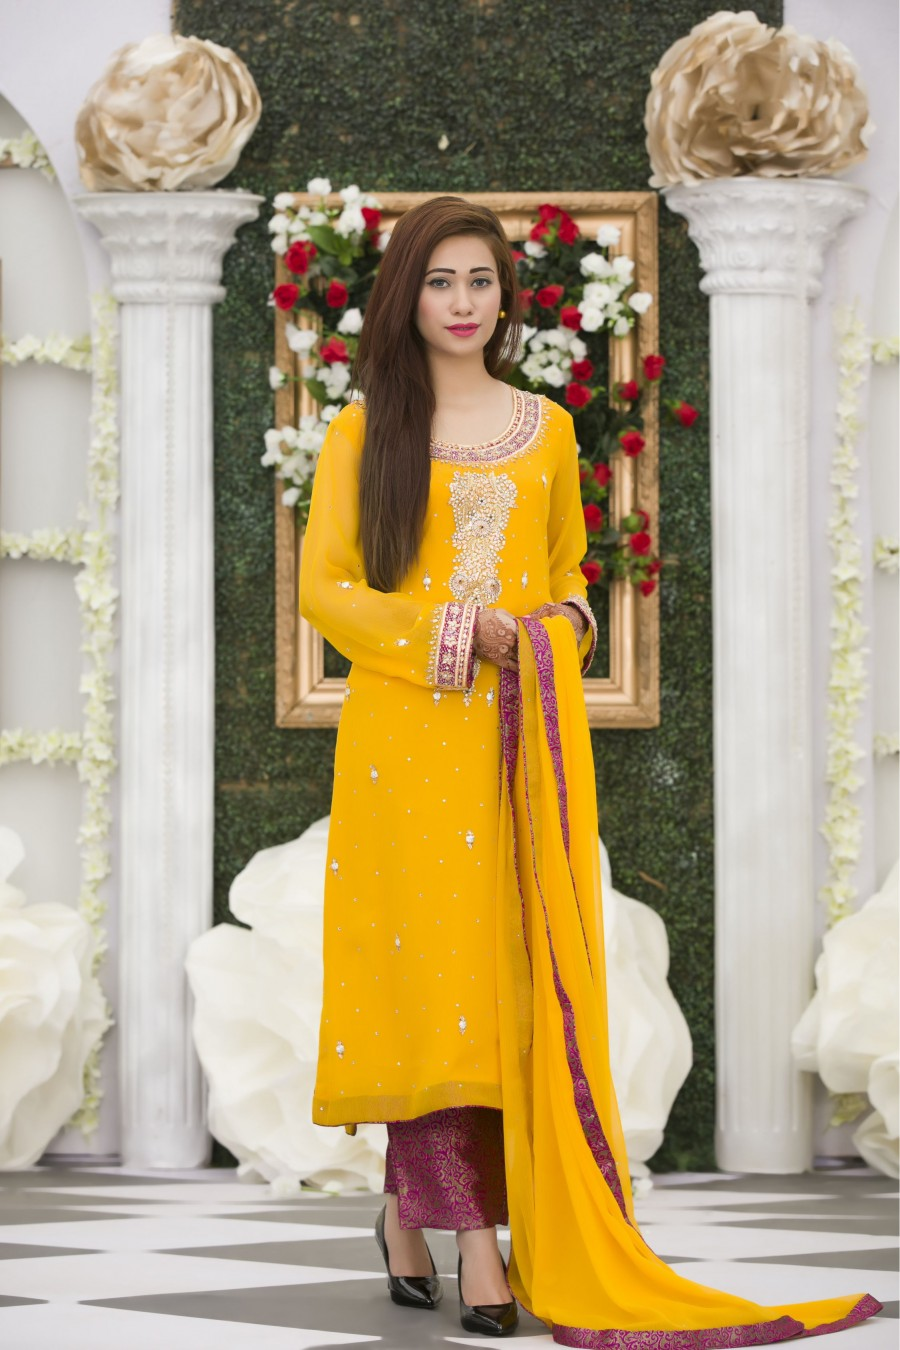 EXCLUSIVE YELLOW-MAGENTA MEHNDI DRESS - Exclusive Online Boutique